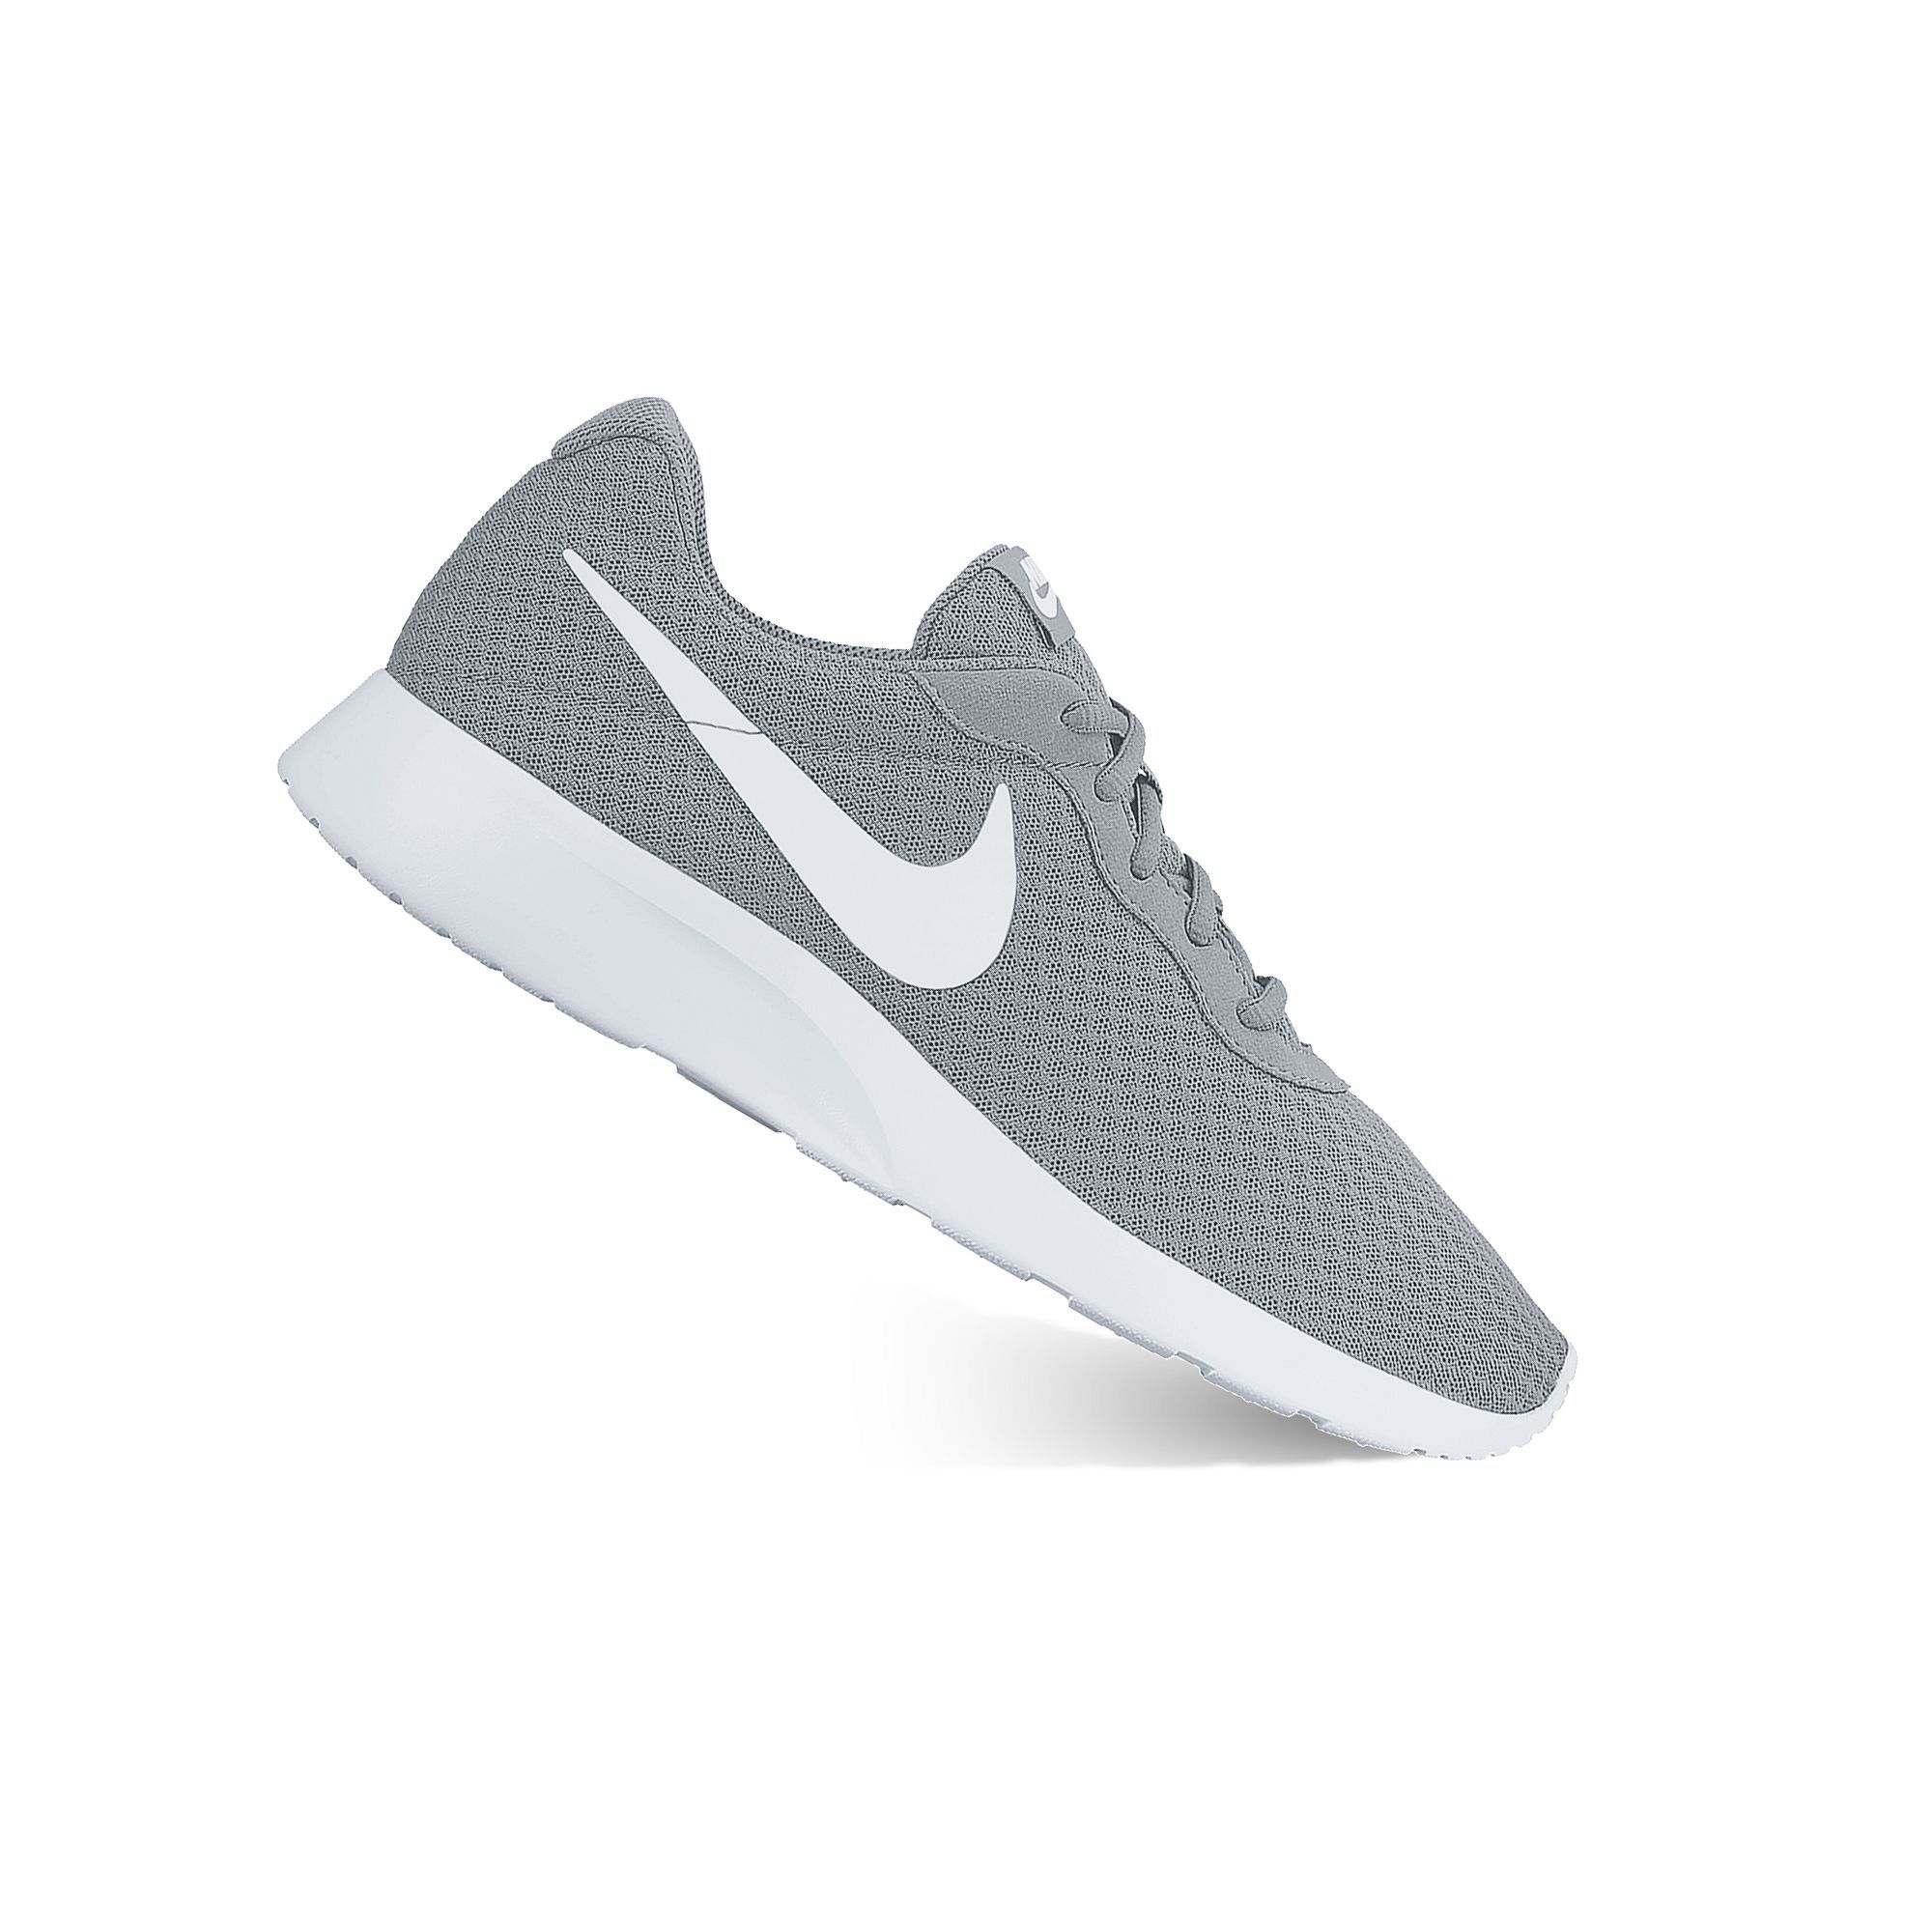 8a48178e61a Nike Tanjun Men s Athletic Shoes in 2019